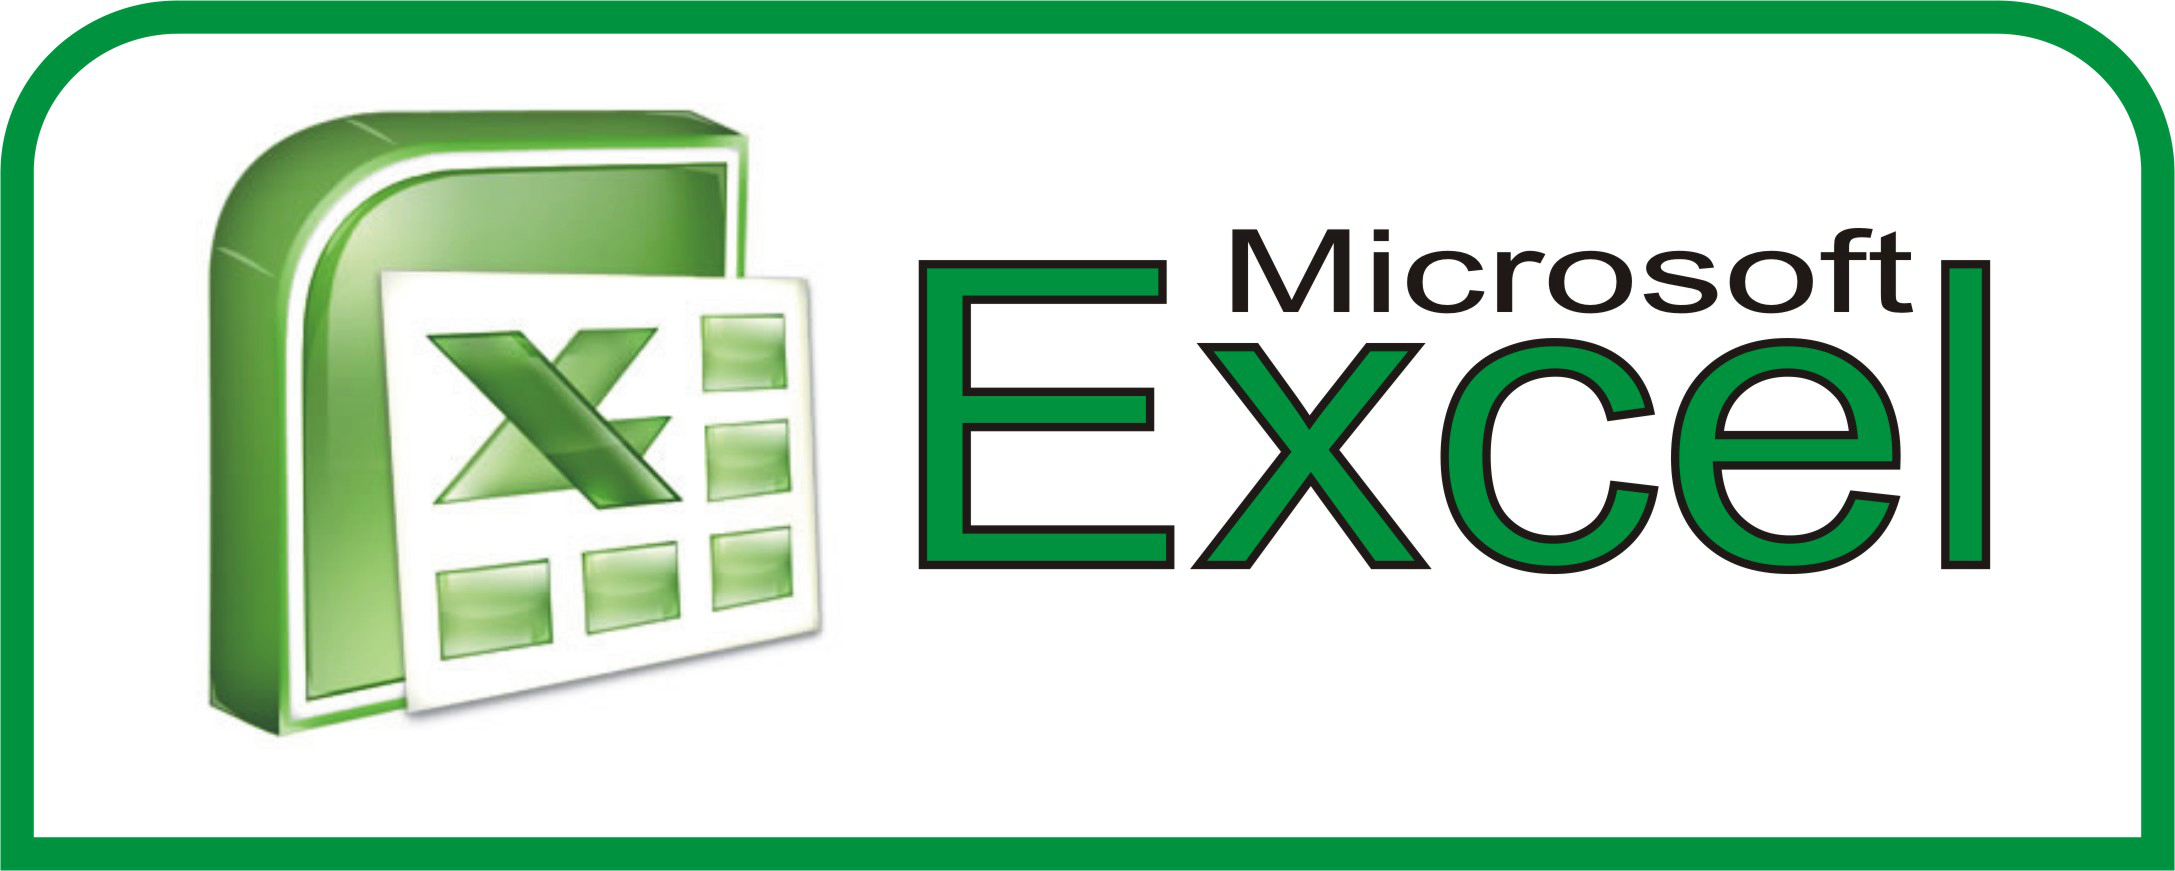 Ediblewildsus  Marvellous  Excel Shortcuts You Probably Didnt Know About  Techdissected With Lovable Add Up Columns In Excel Besides Project Log Template Excel Furthermore Set Range In Excel With Attractive Java Write To Excel Also Vba Use Excel Function In Addition Excel Vba Isna And Excel Depreciation Formula As Well As Excel Vba Value Additionally Comparing  Excel Sheets From Techdissectedcom With Ediblewildsus  Lovable  Excel Shortcuts You Probably Didnt Know About  Techdissected With Attractive Add Up Columns In Excel Besides Project Log Template Excel Furthermore Set Range In Excel And Marvellous Java Write To Excel Also Vba Use Excel Function In Addition Excel Vba Isna From Techdissectedcom